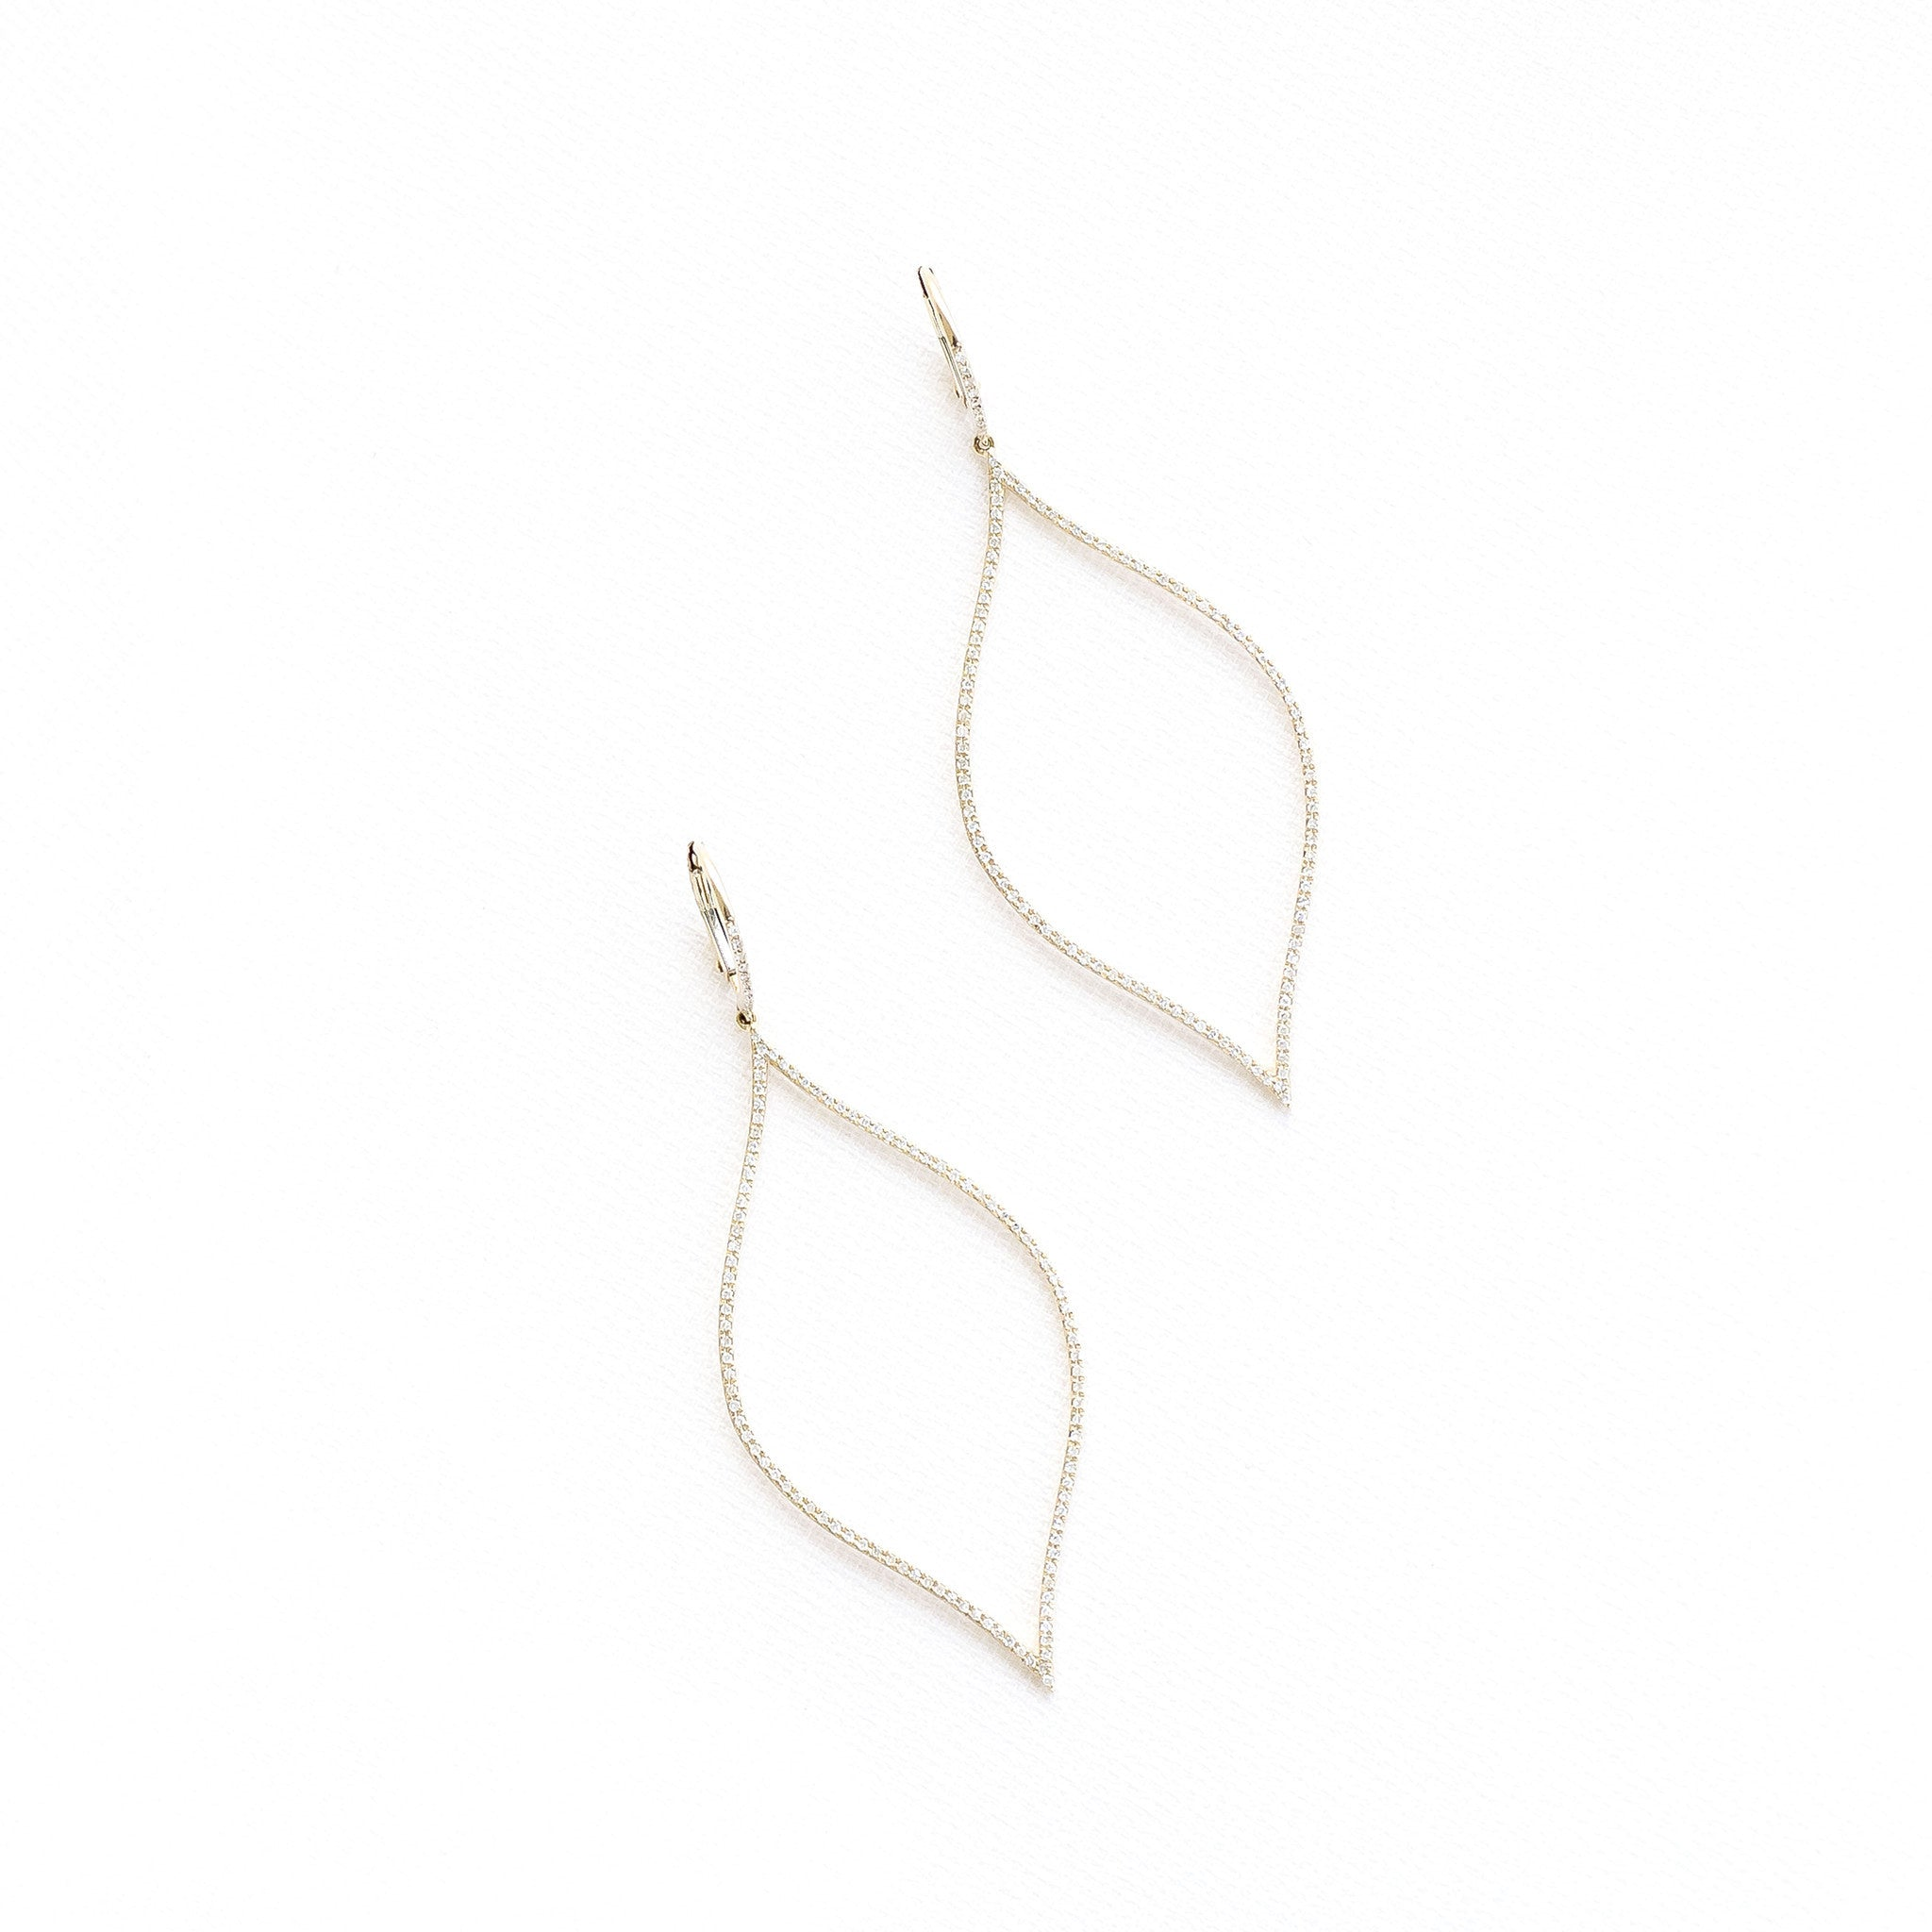 Dangling Diamond Mosaic Earrings by Atheria Jewelry